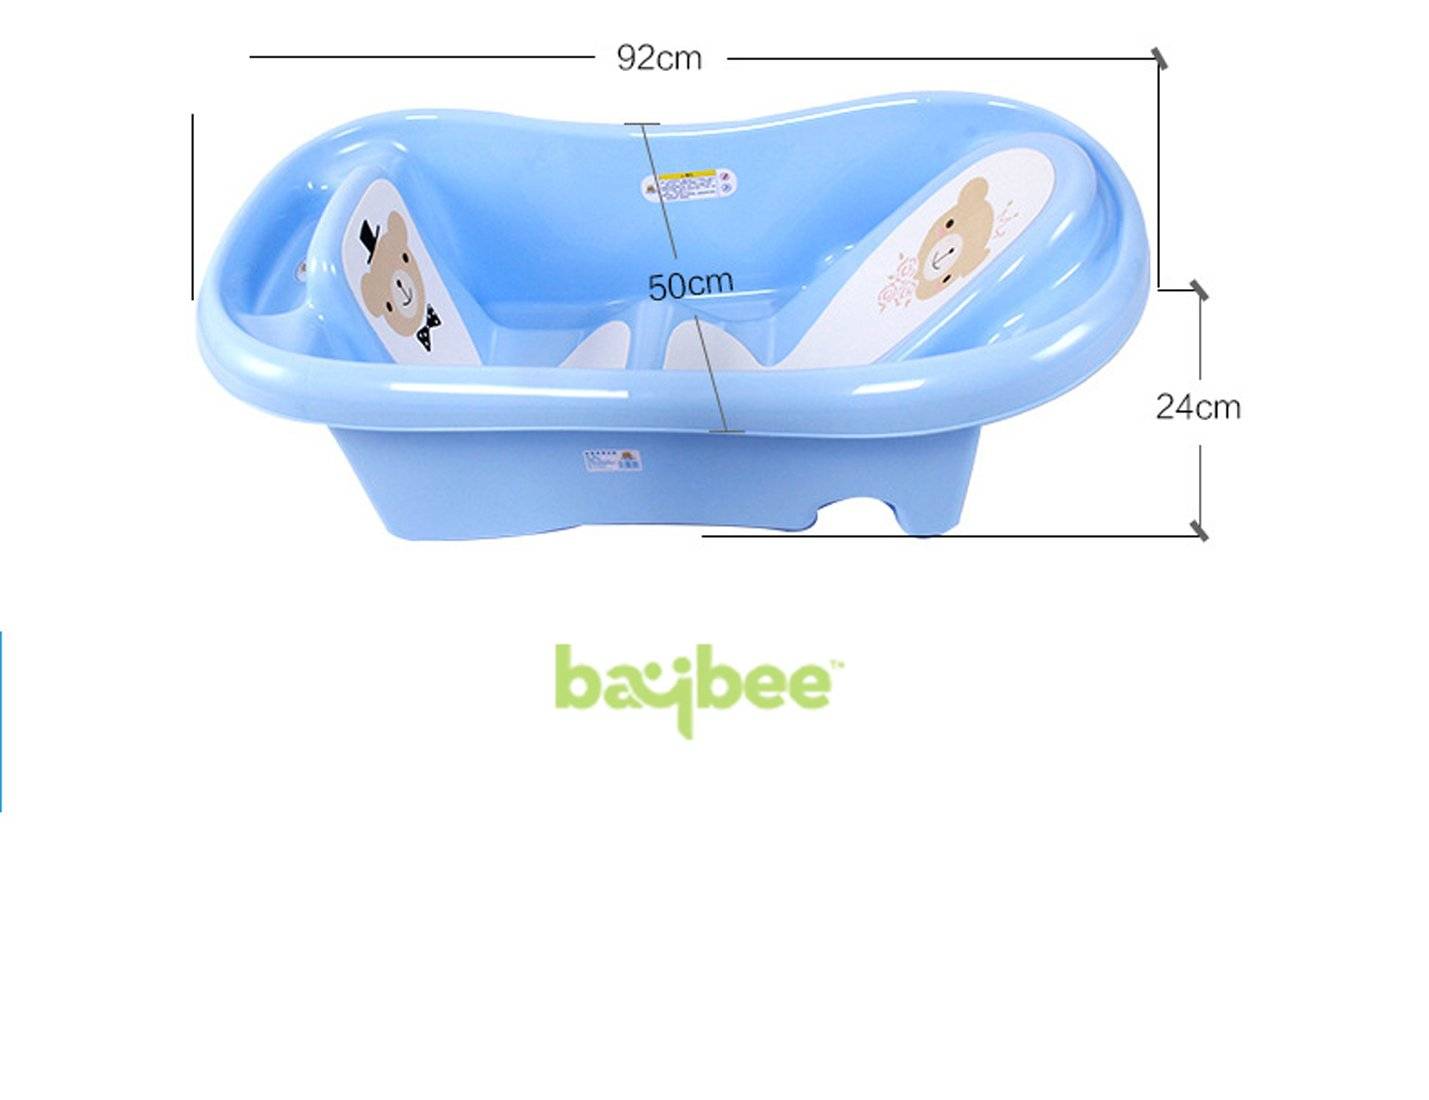 Buy Baybee Amdia Multistage Bath tub Newborn to 18 month - ( Blue ...